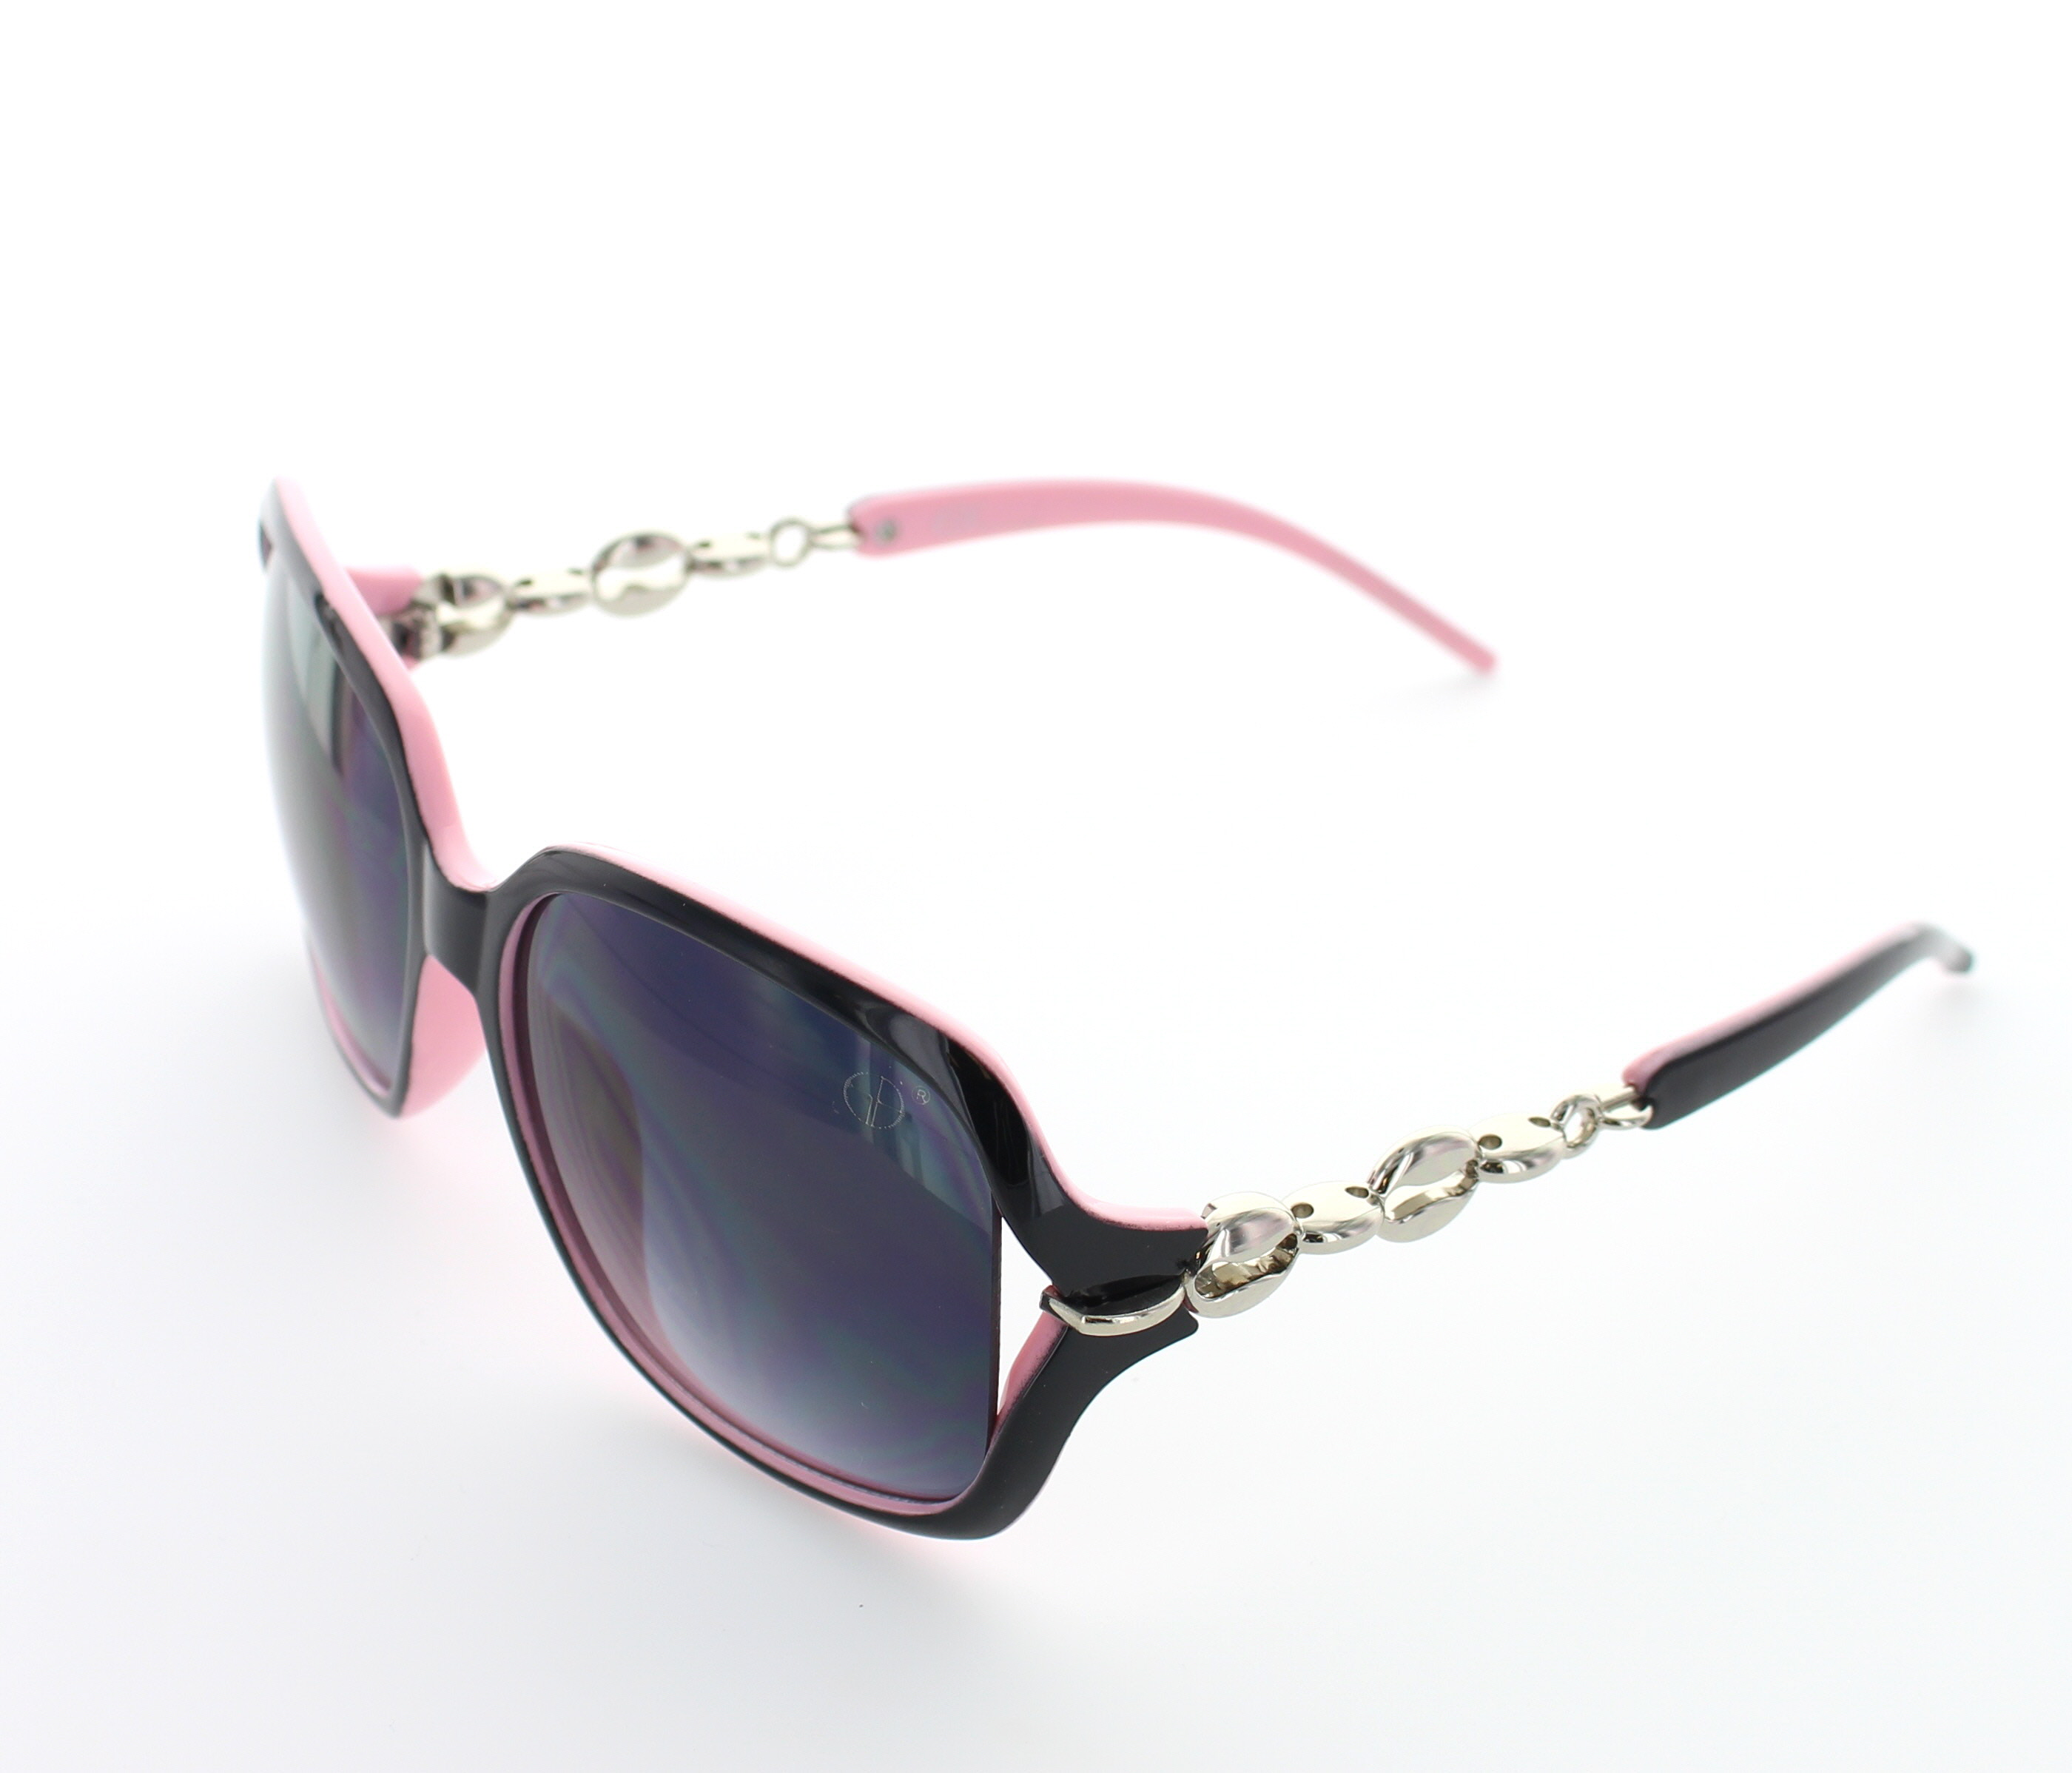 Fashion sunglasses online store